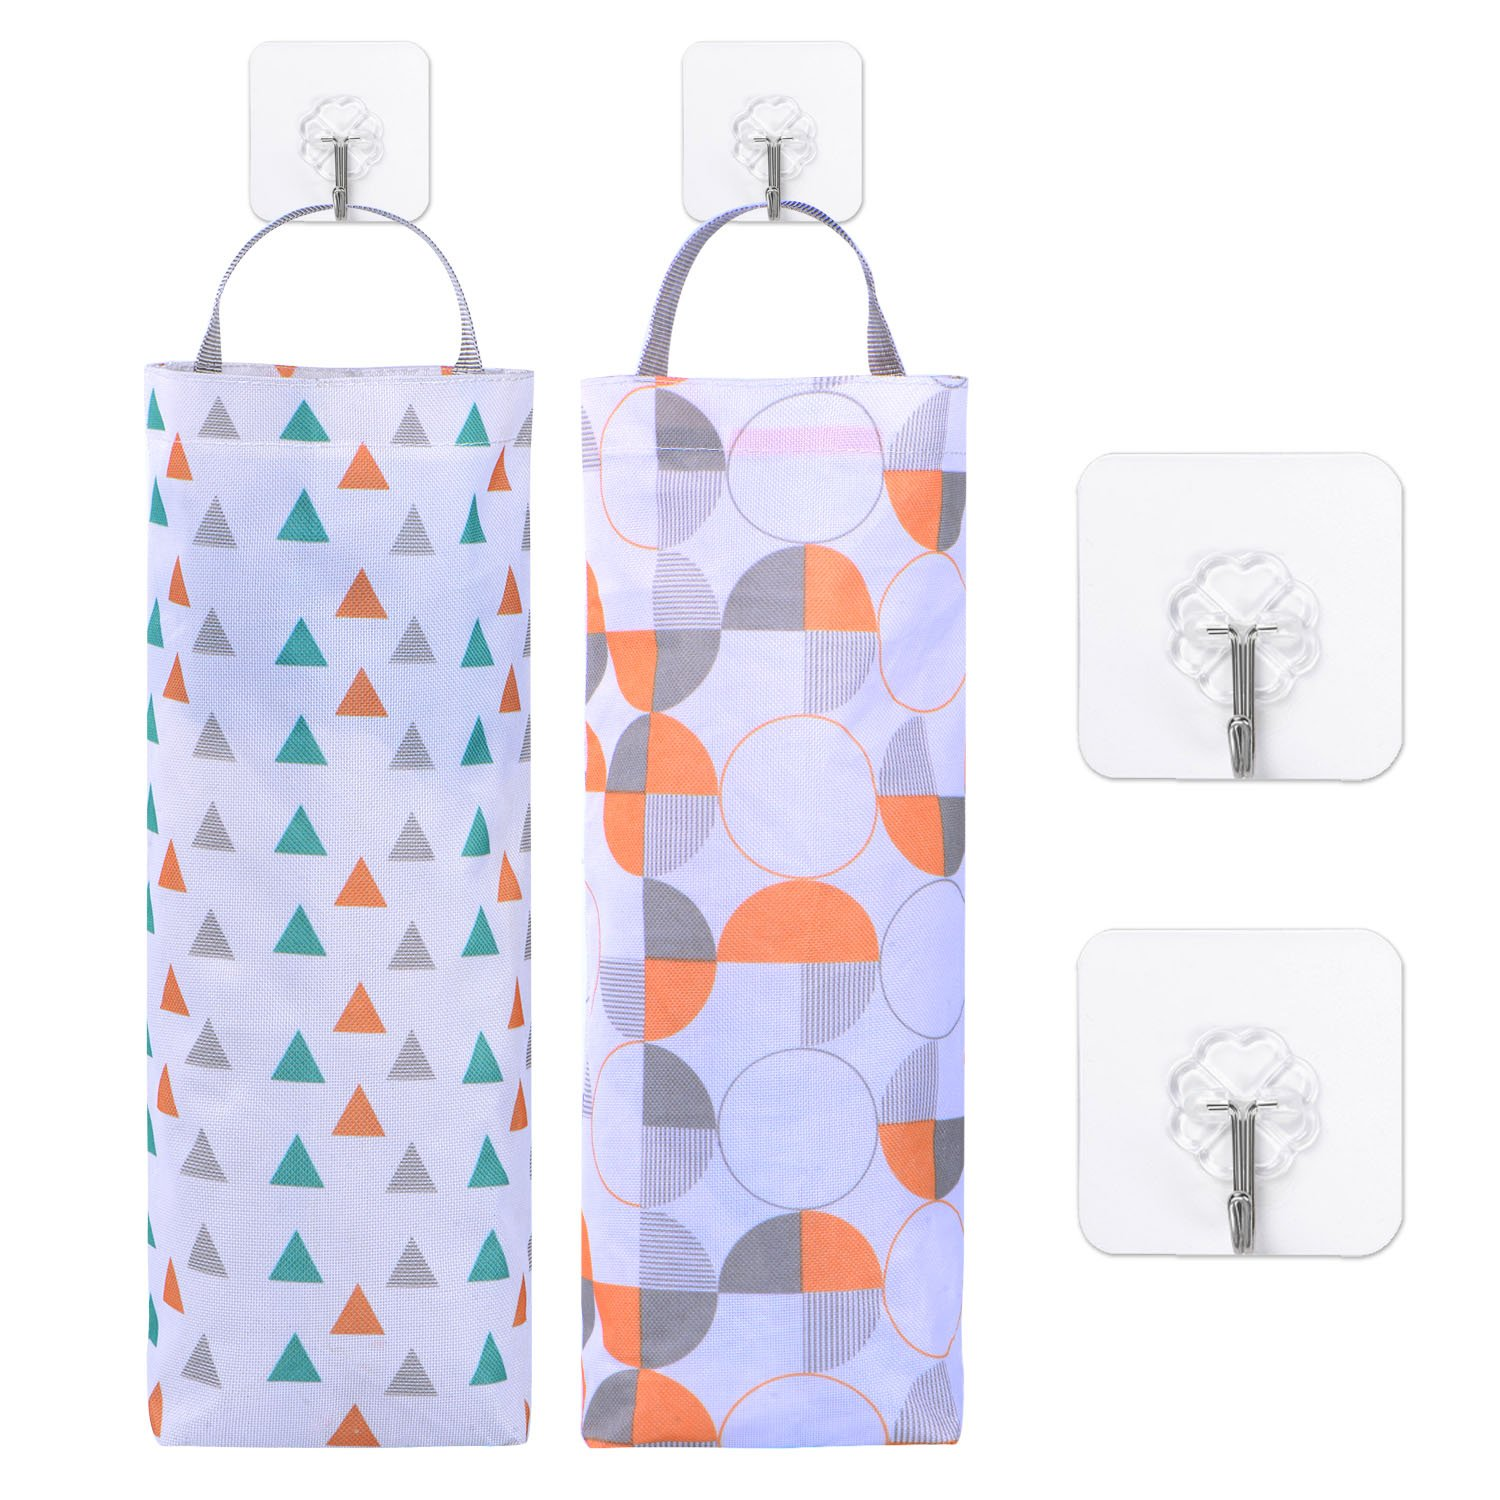 2 Pieces Plastic Bag Holder Hanging Storage Trash Bags Folding Garbage Bag Organizer with 4 Pieces Hooks for Kitchen Office Home BBTO